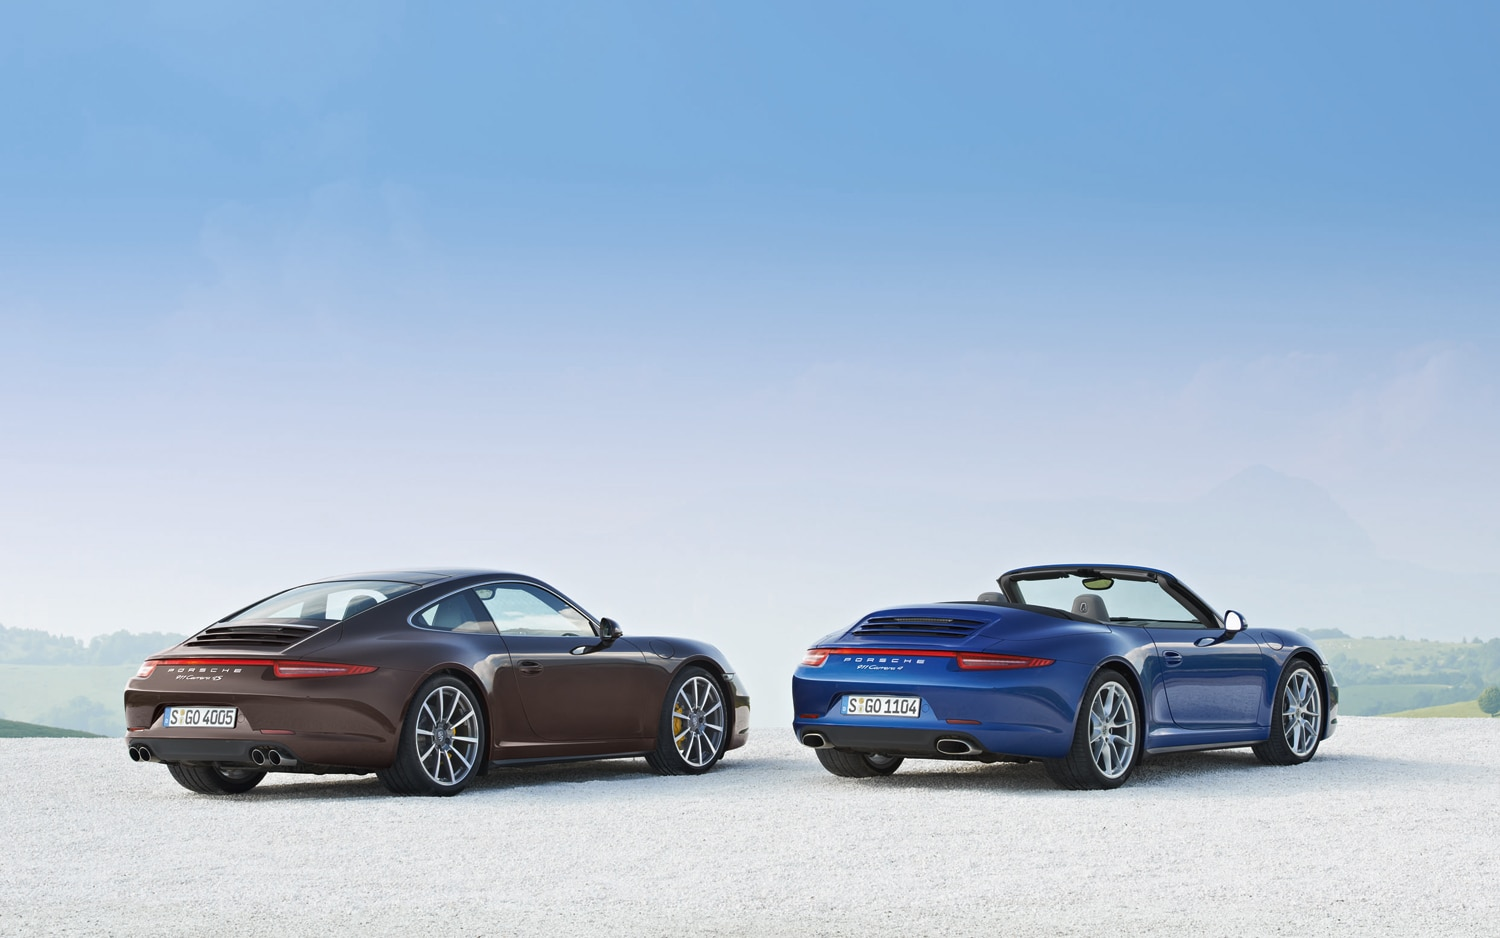 2013 Porsche 911 Carrera 4S And Carrera 4 Rear Right View1